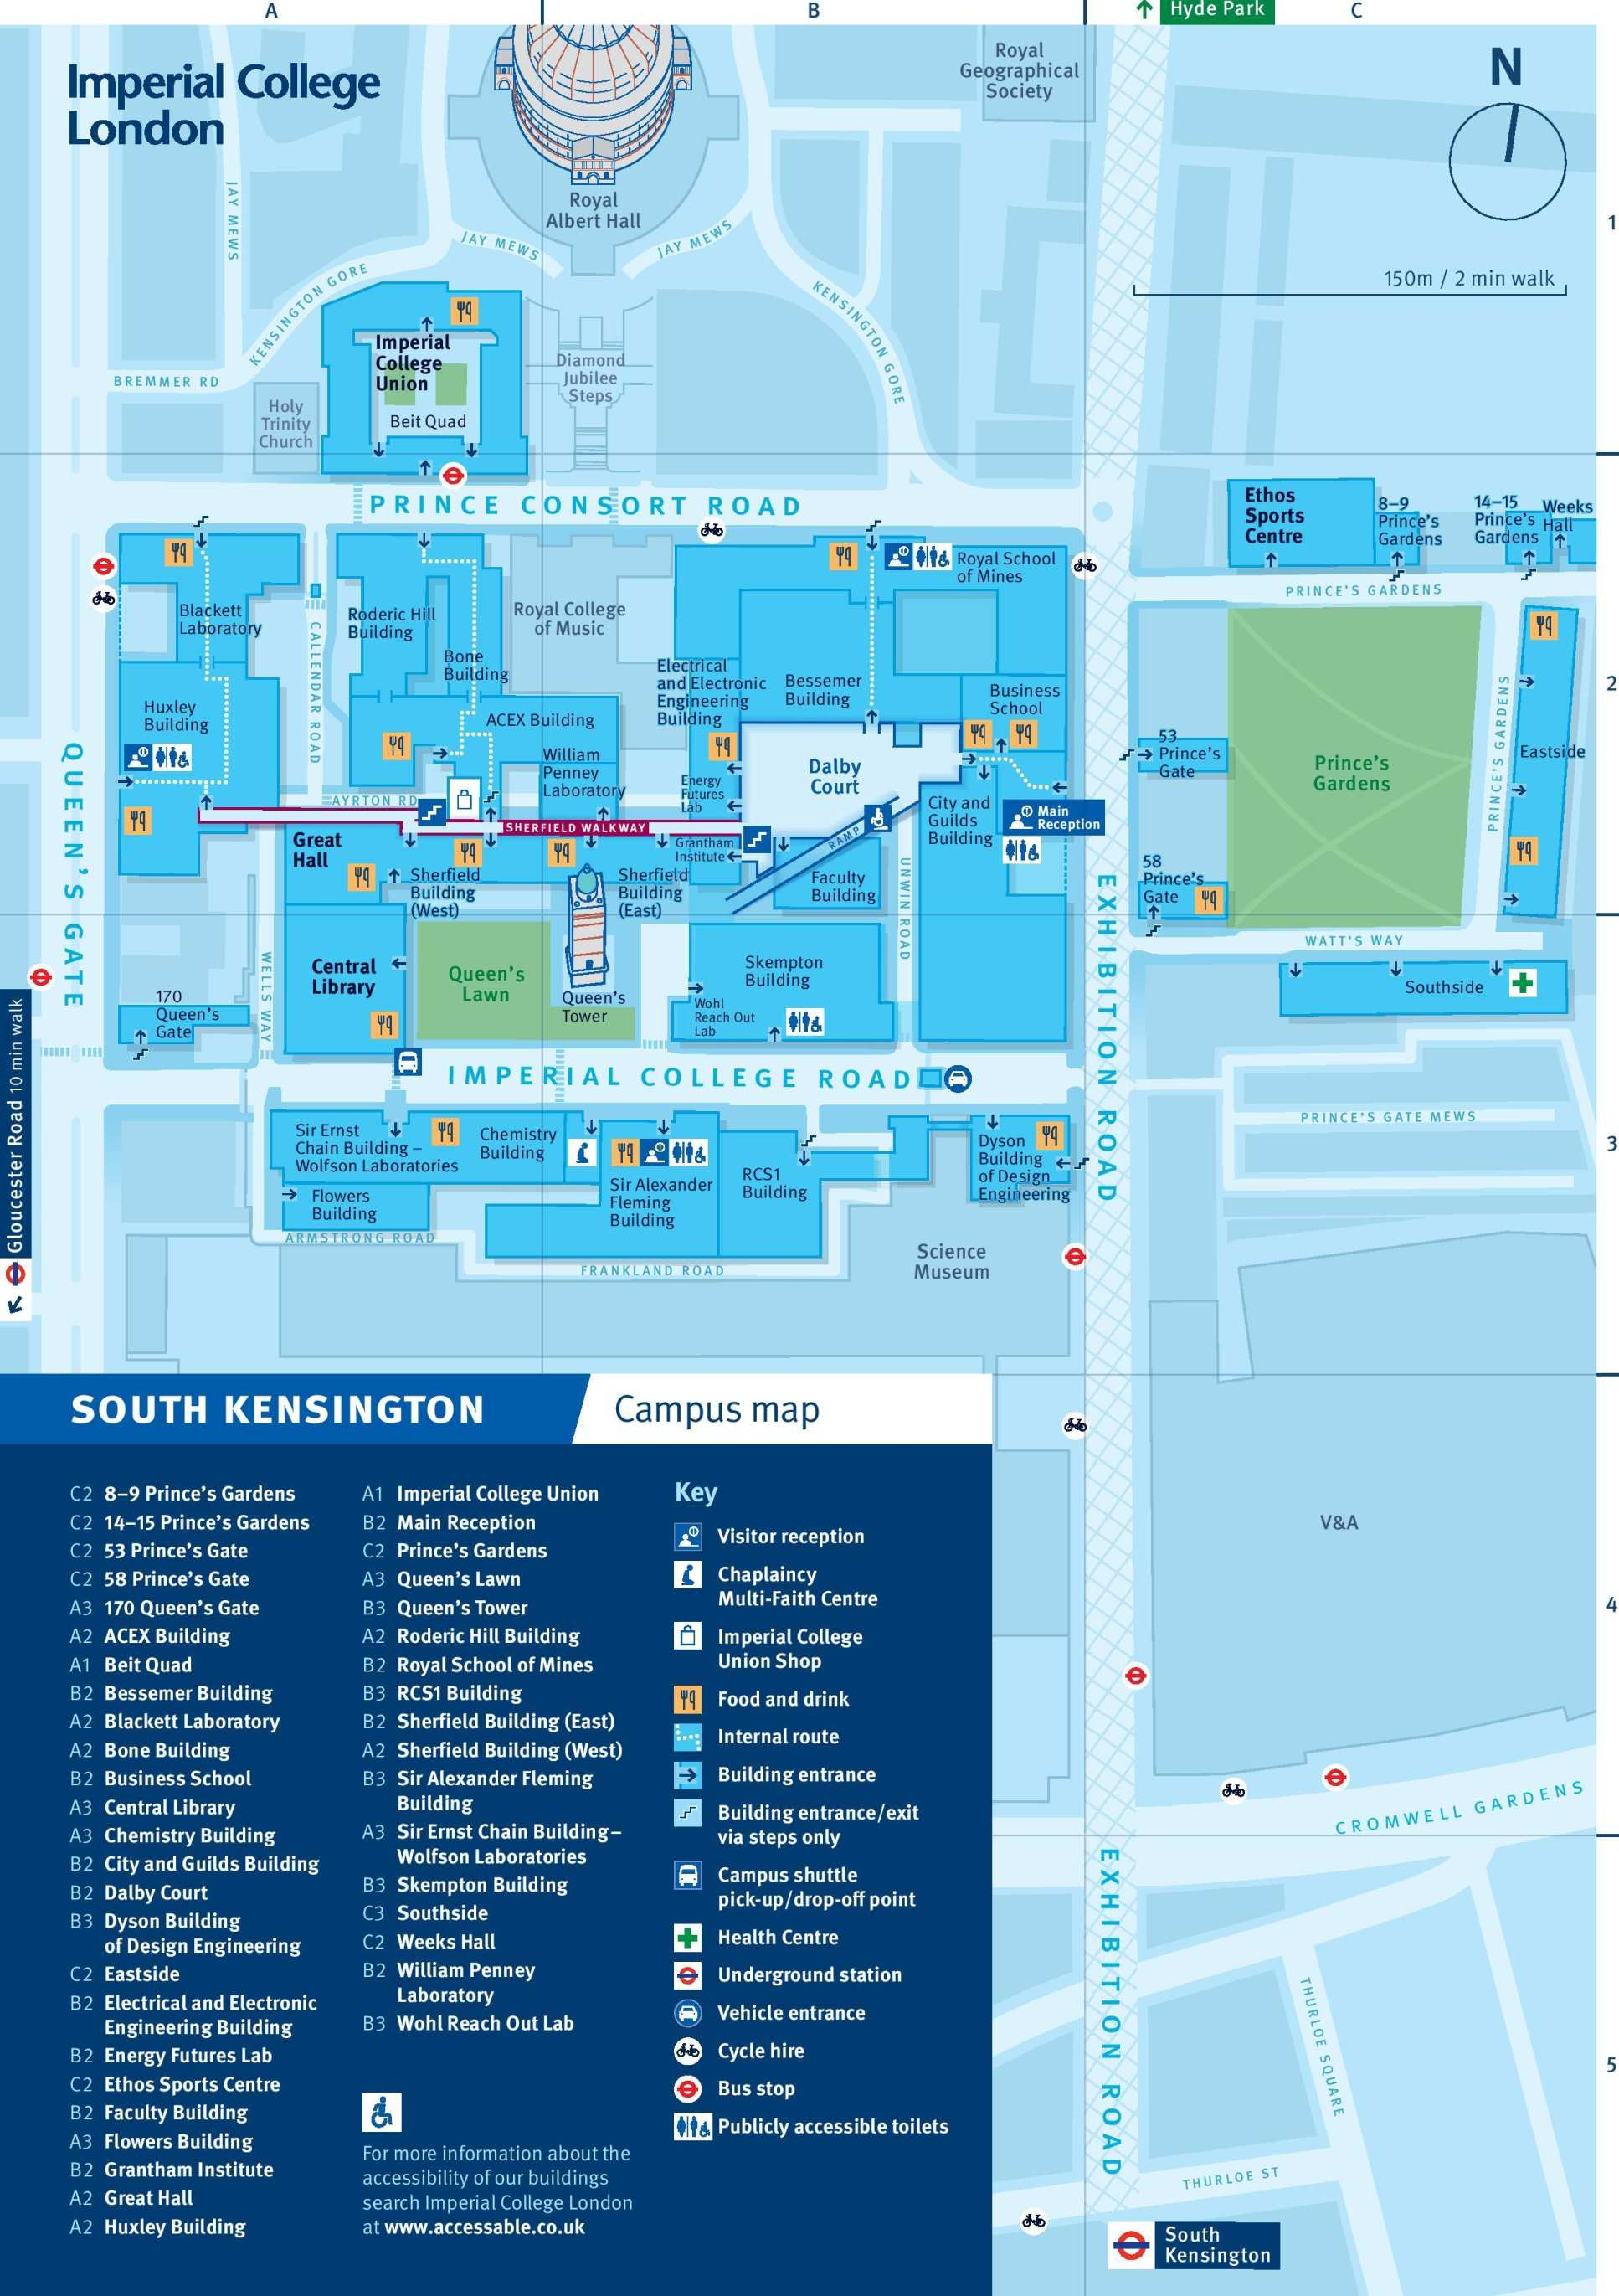 A map of South Kensington Campus